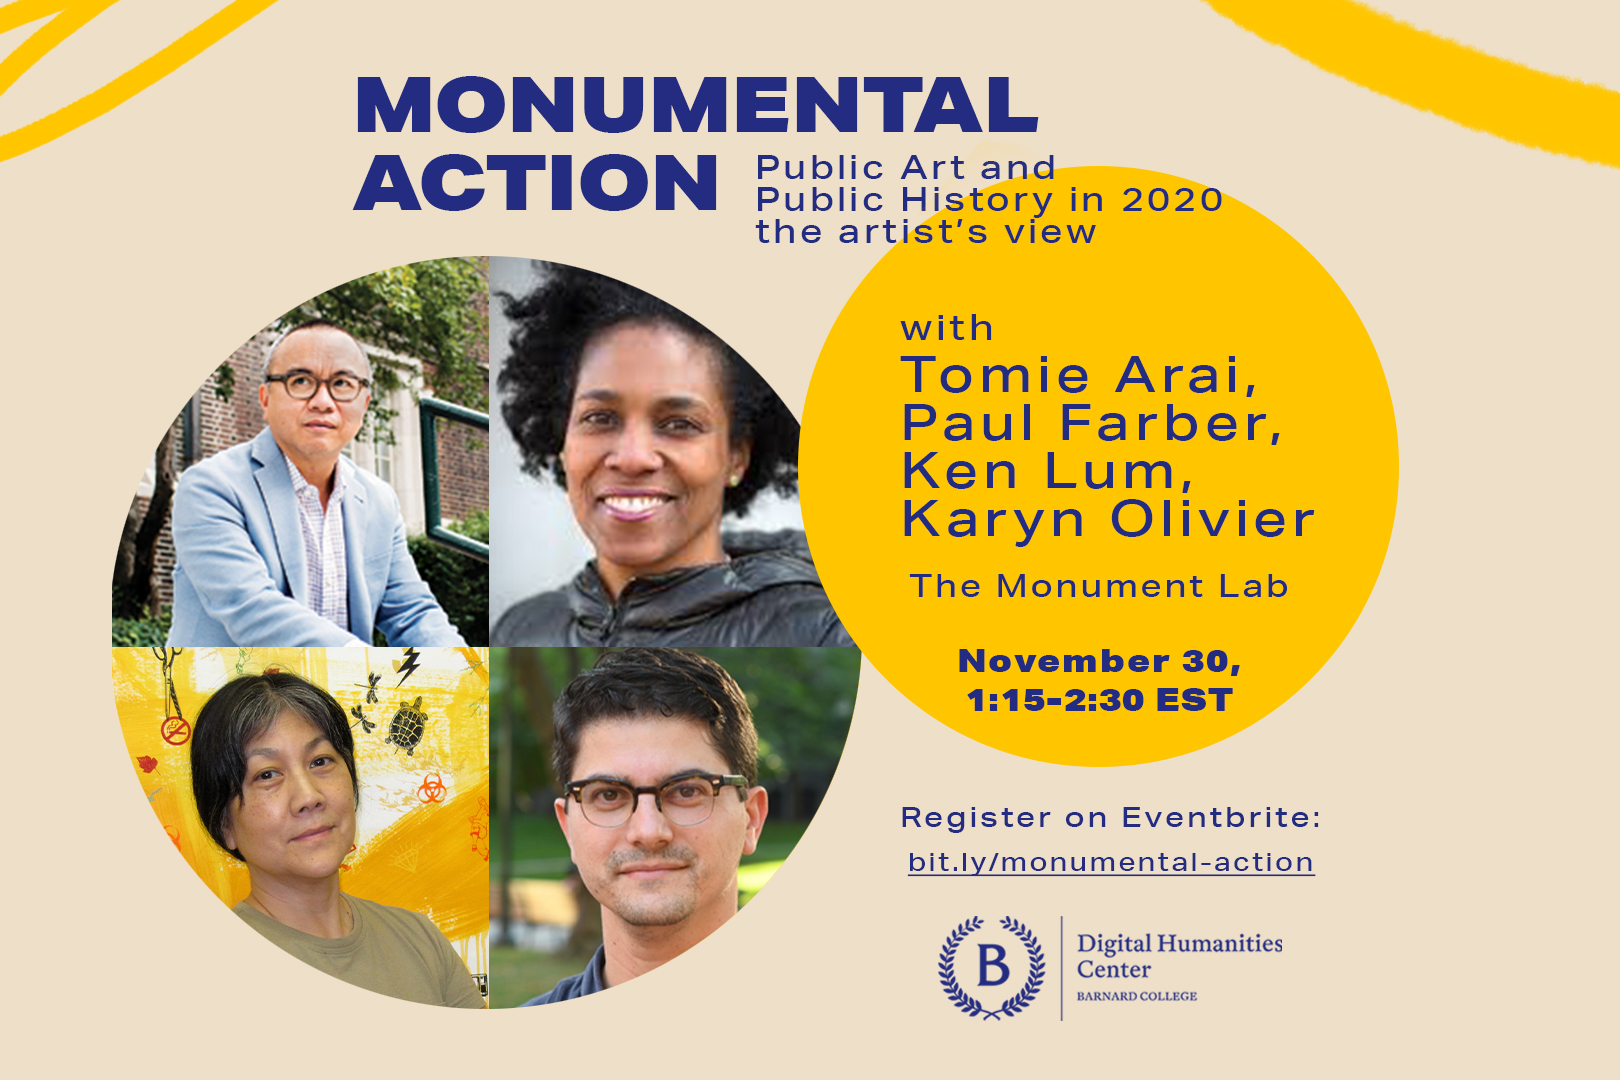 Poster for third Monumental Action event featuring portraits of Monument Lab artists